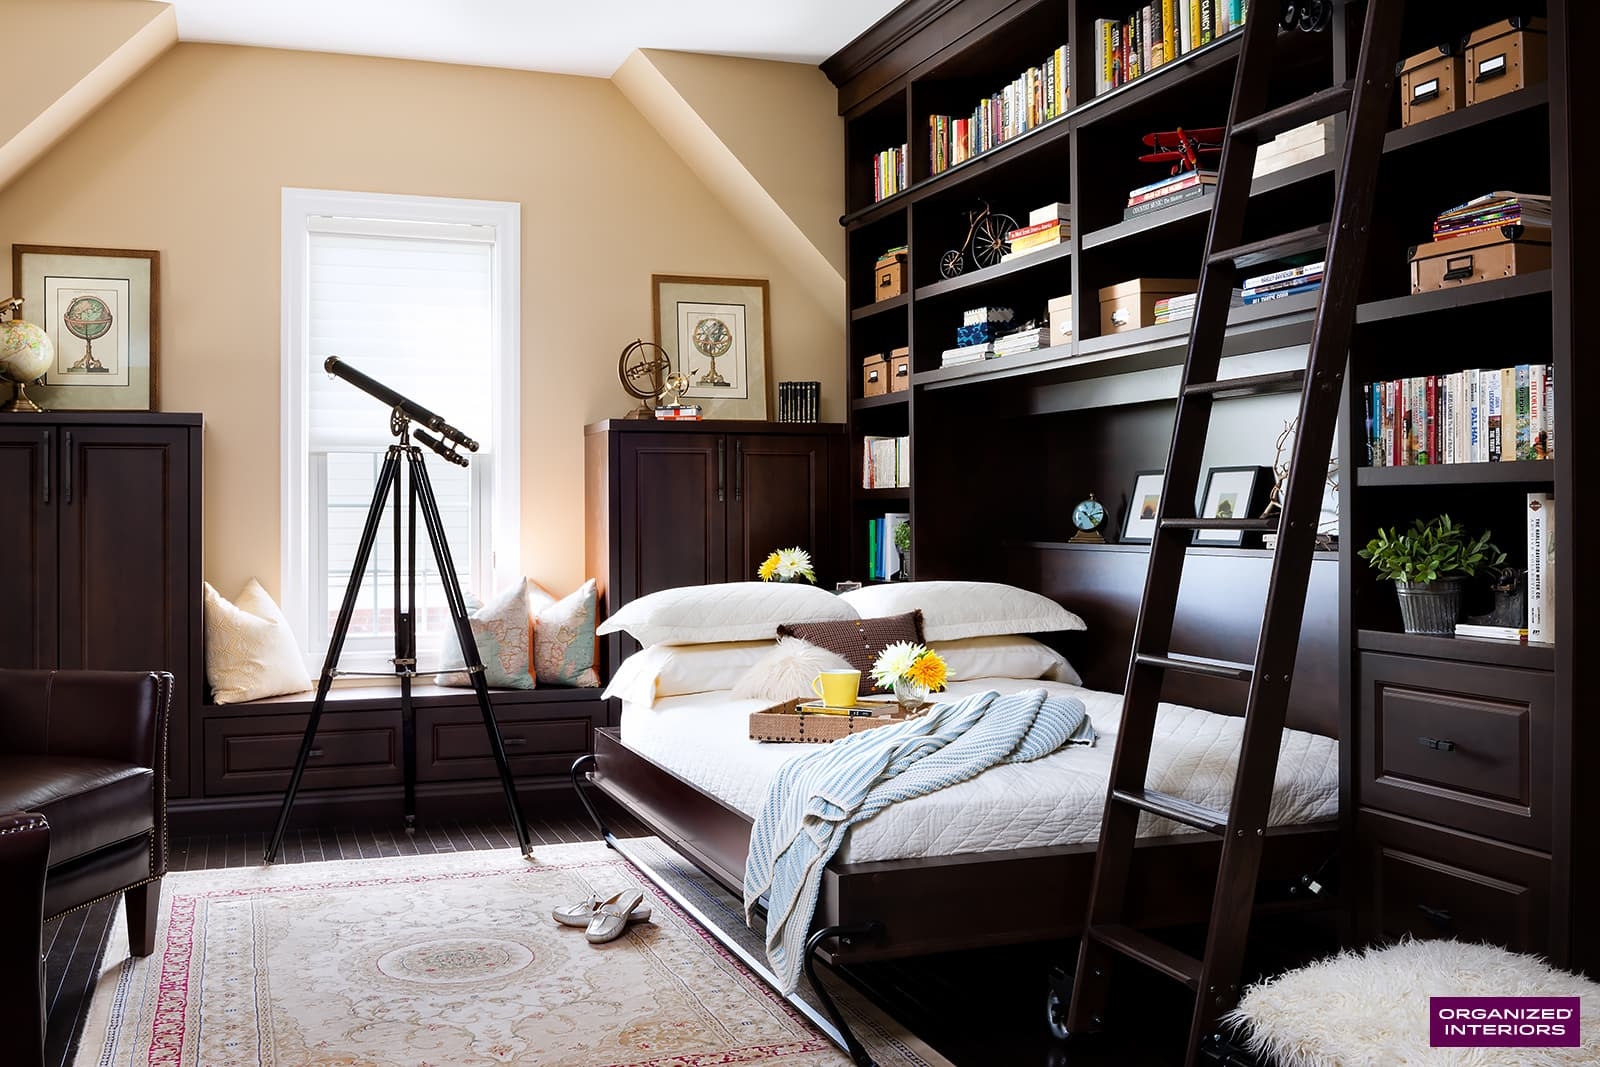 Murphy bed in down position with pillows on bed, custom built-ins, ladder, telescope and rug.